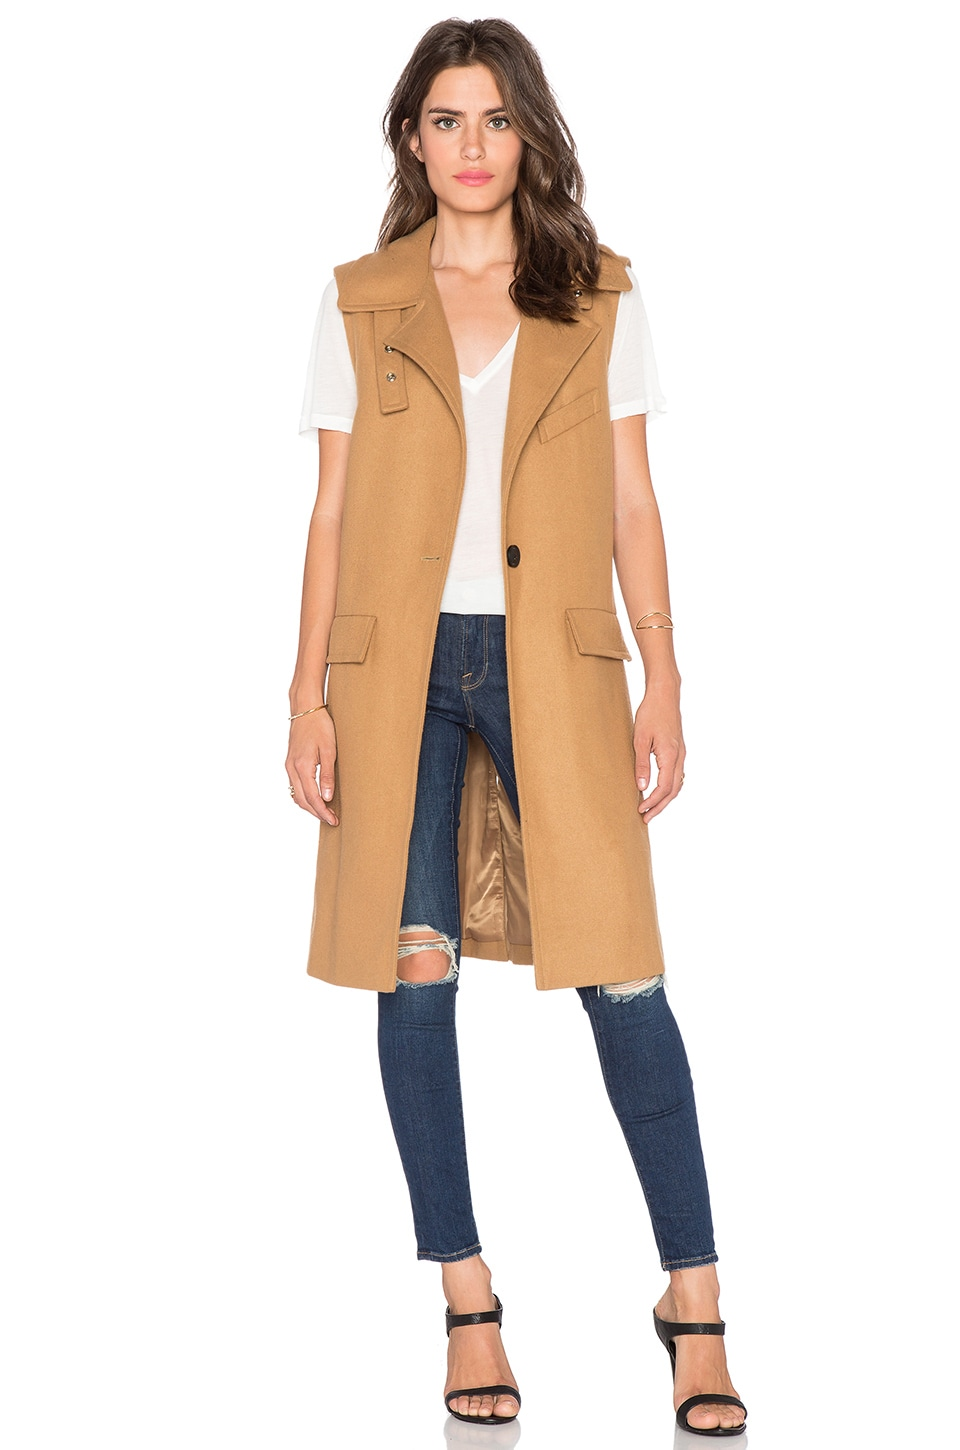 J.O.A. Sleeveless One Button Coat in Khaki